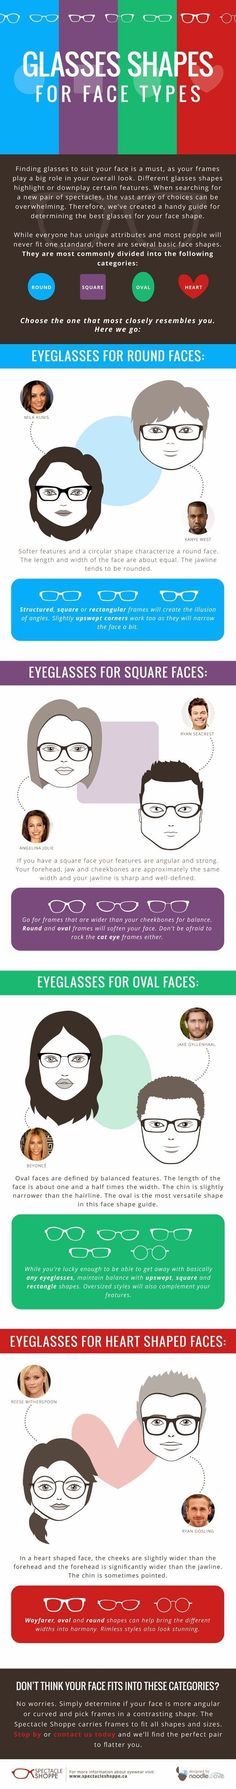 834ab0c02d1 How to choose Perfect Sunglasses according to Face Shape